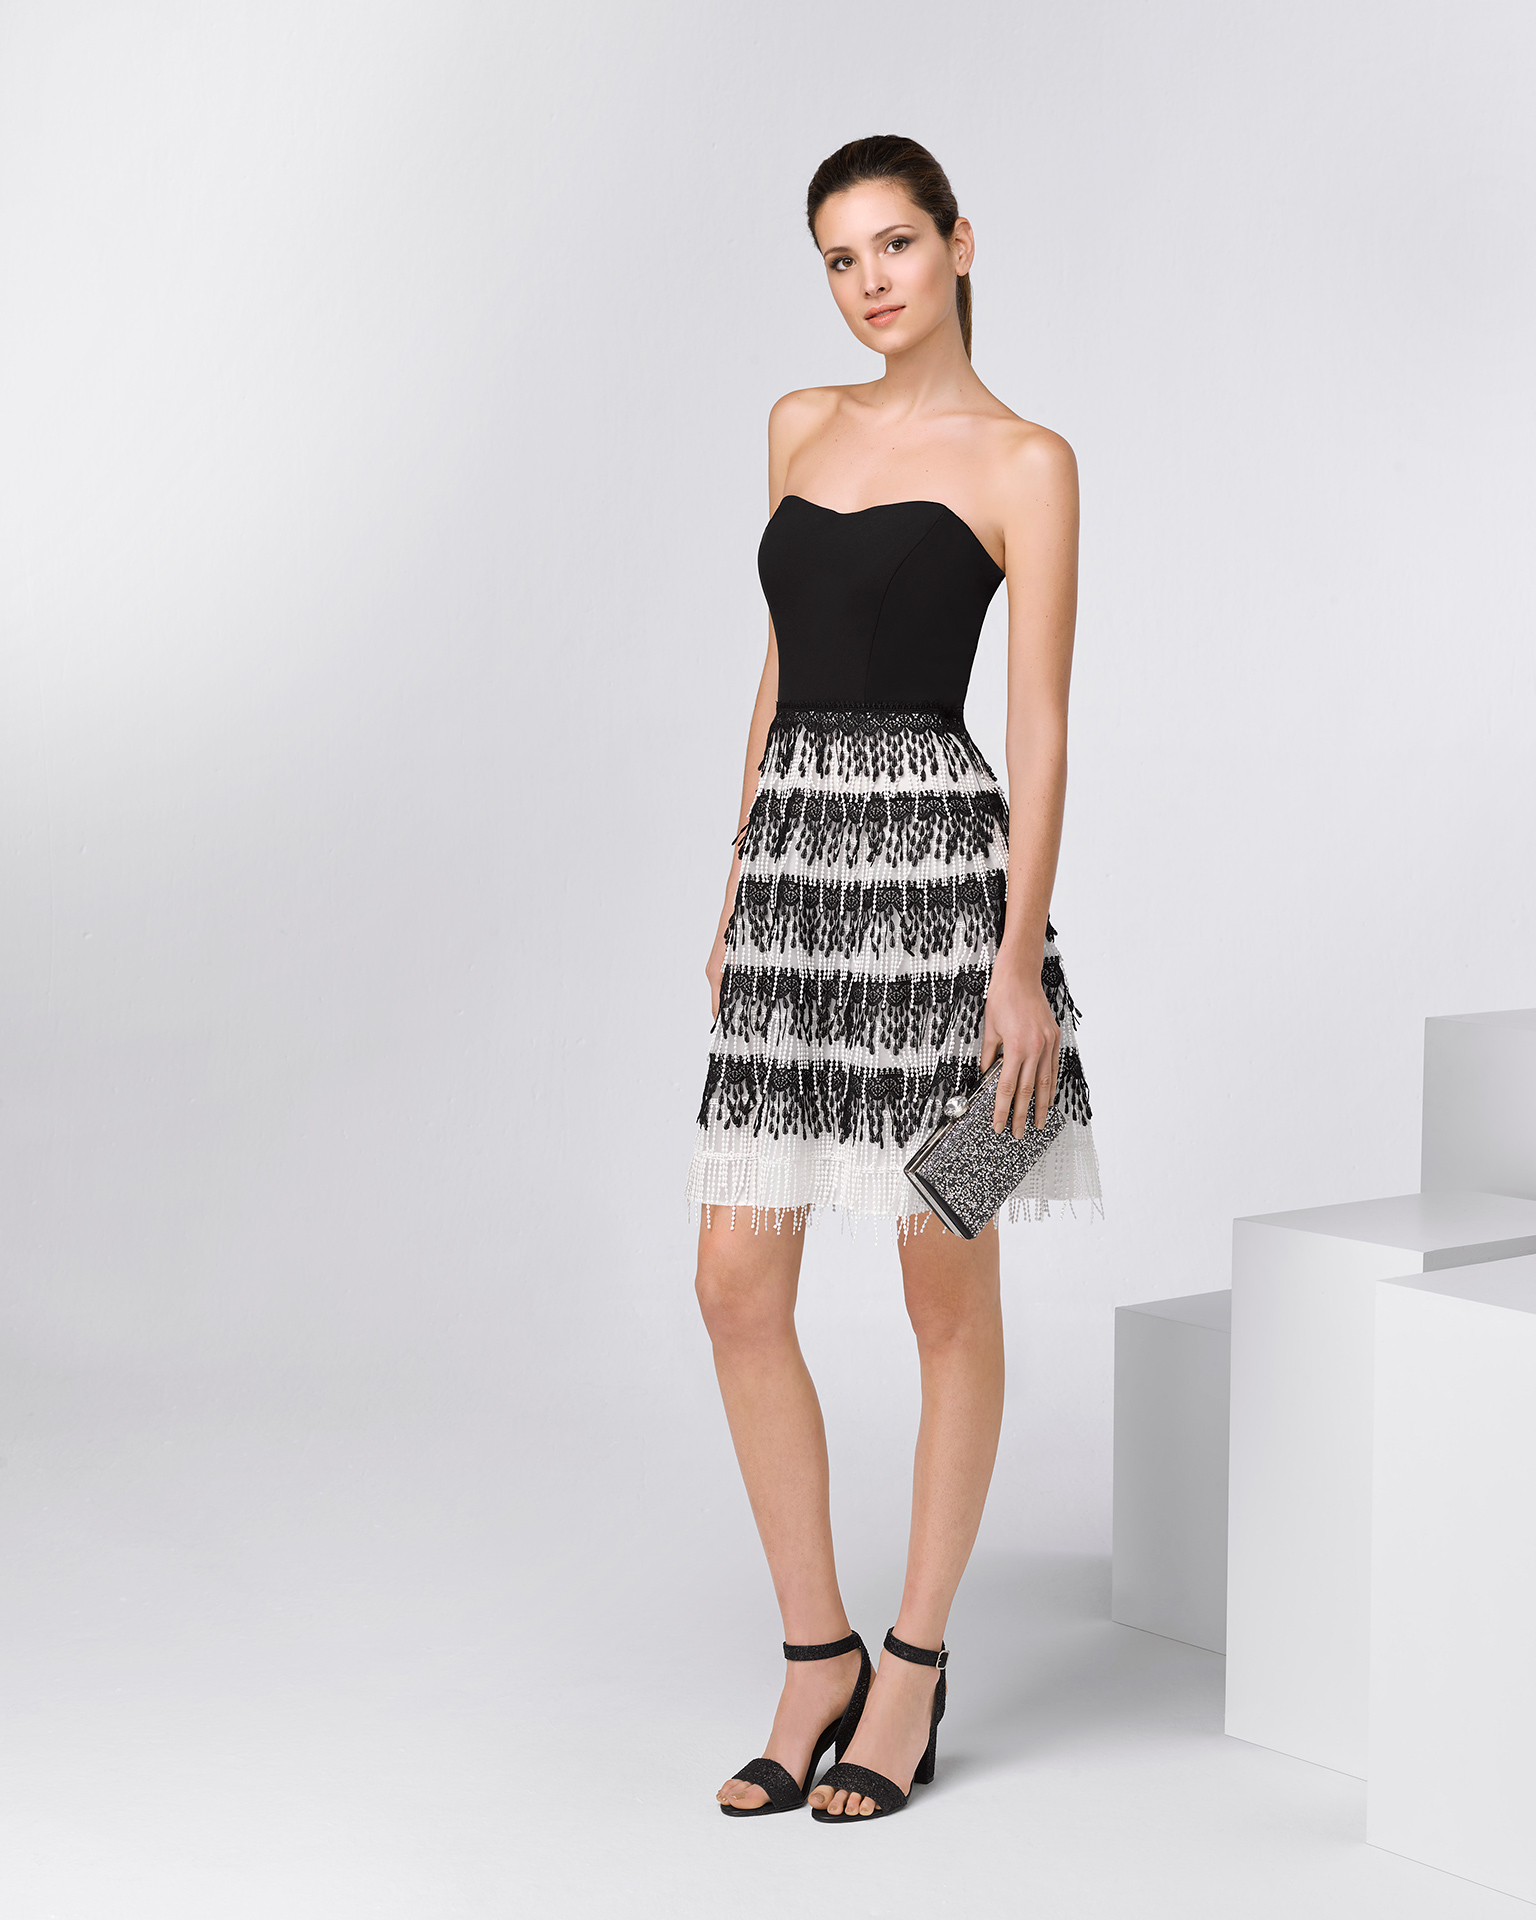 1a89ffdeb59 Short strapless crepe and guipure lace cocktail dress with shawl. Available  in black white ...